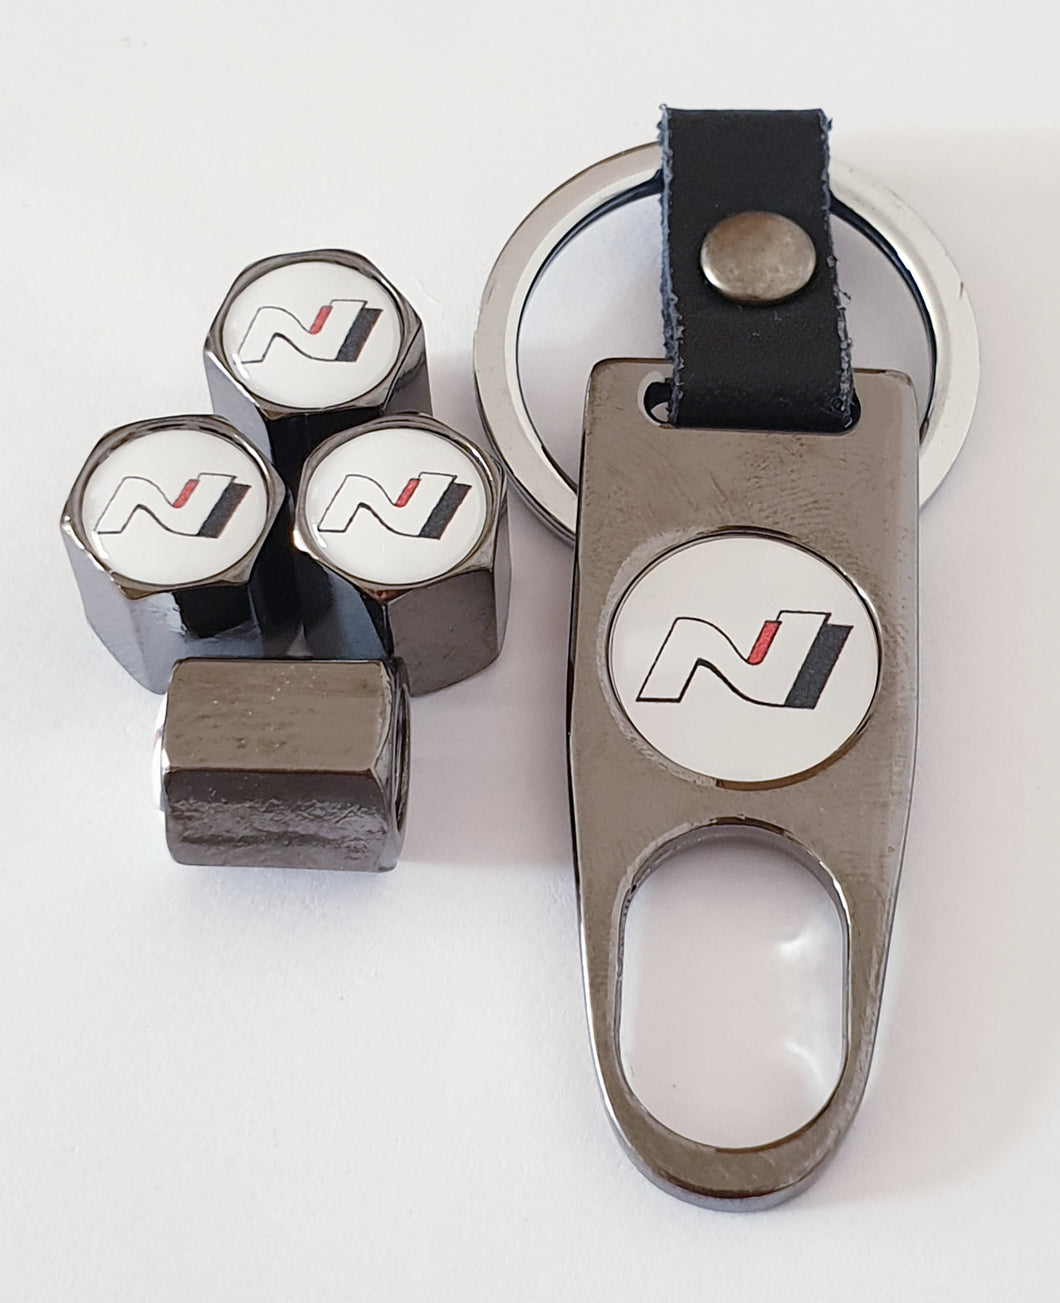 HYUNDAI N logo  VALVE CAPS HEXI STYLE 12MM 8 COLOURS for ALL models Metal caps with Keychain/Spanner boxed Item